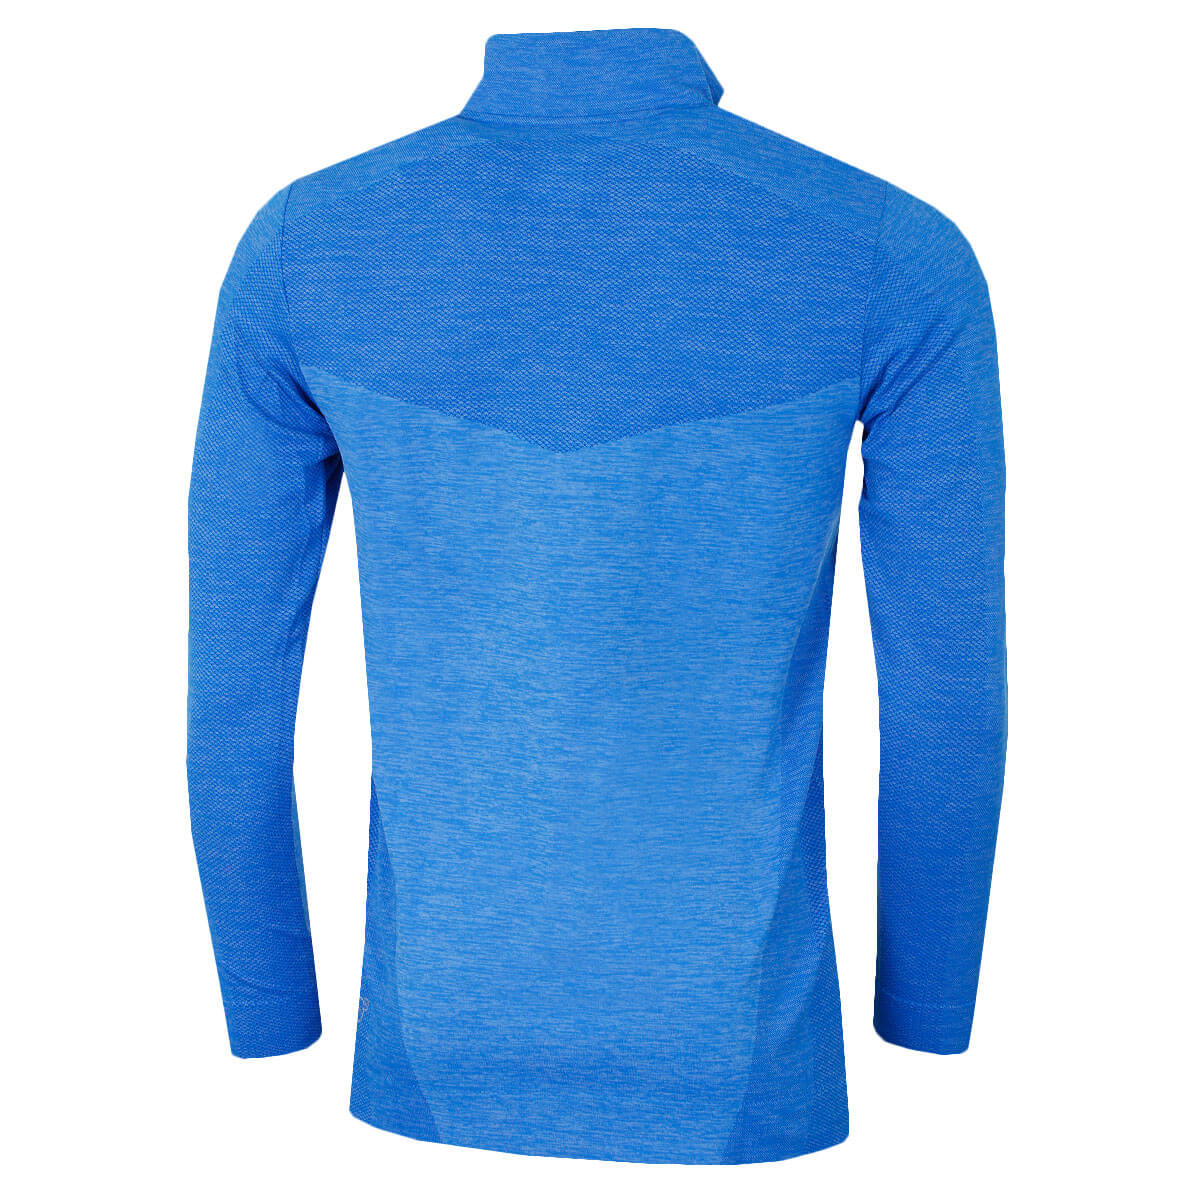 Puma-Golf-Mens-Evoknit-Seamless-1-4-Zip-Pullover-Jumper-Sweater-47-OFF-RRP thumbnail 3